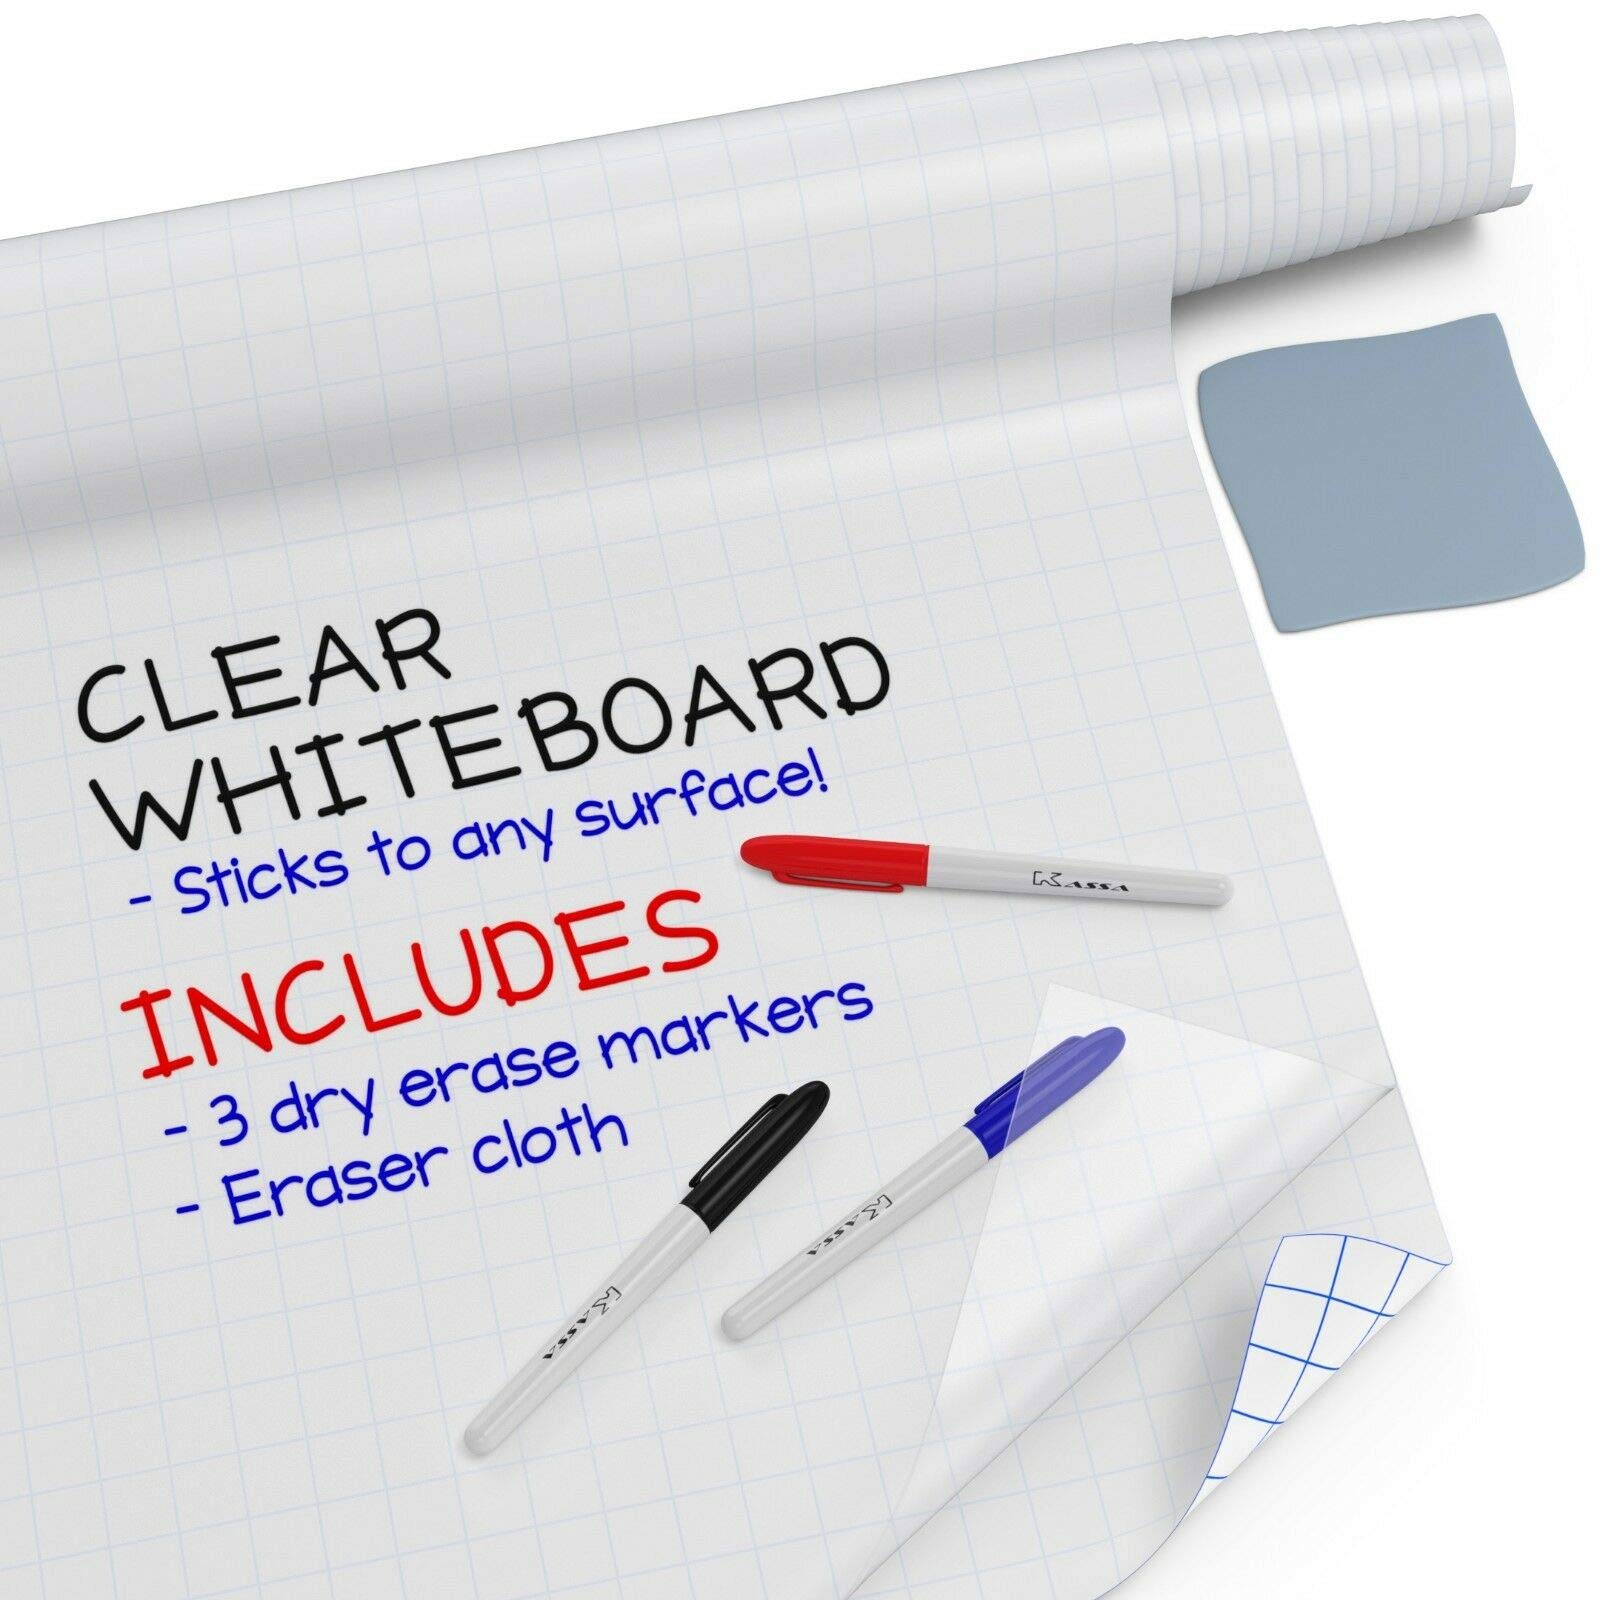 Kassa Clear Dry Erase Board Sticker - 18'' x 78'' (6.5 Feet) - 3 Dry-Erase Board Markers Included - Transparent Adhesive White Board for Refrigerator, Desk, Office - Glass Dry Erase Board Alternative